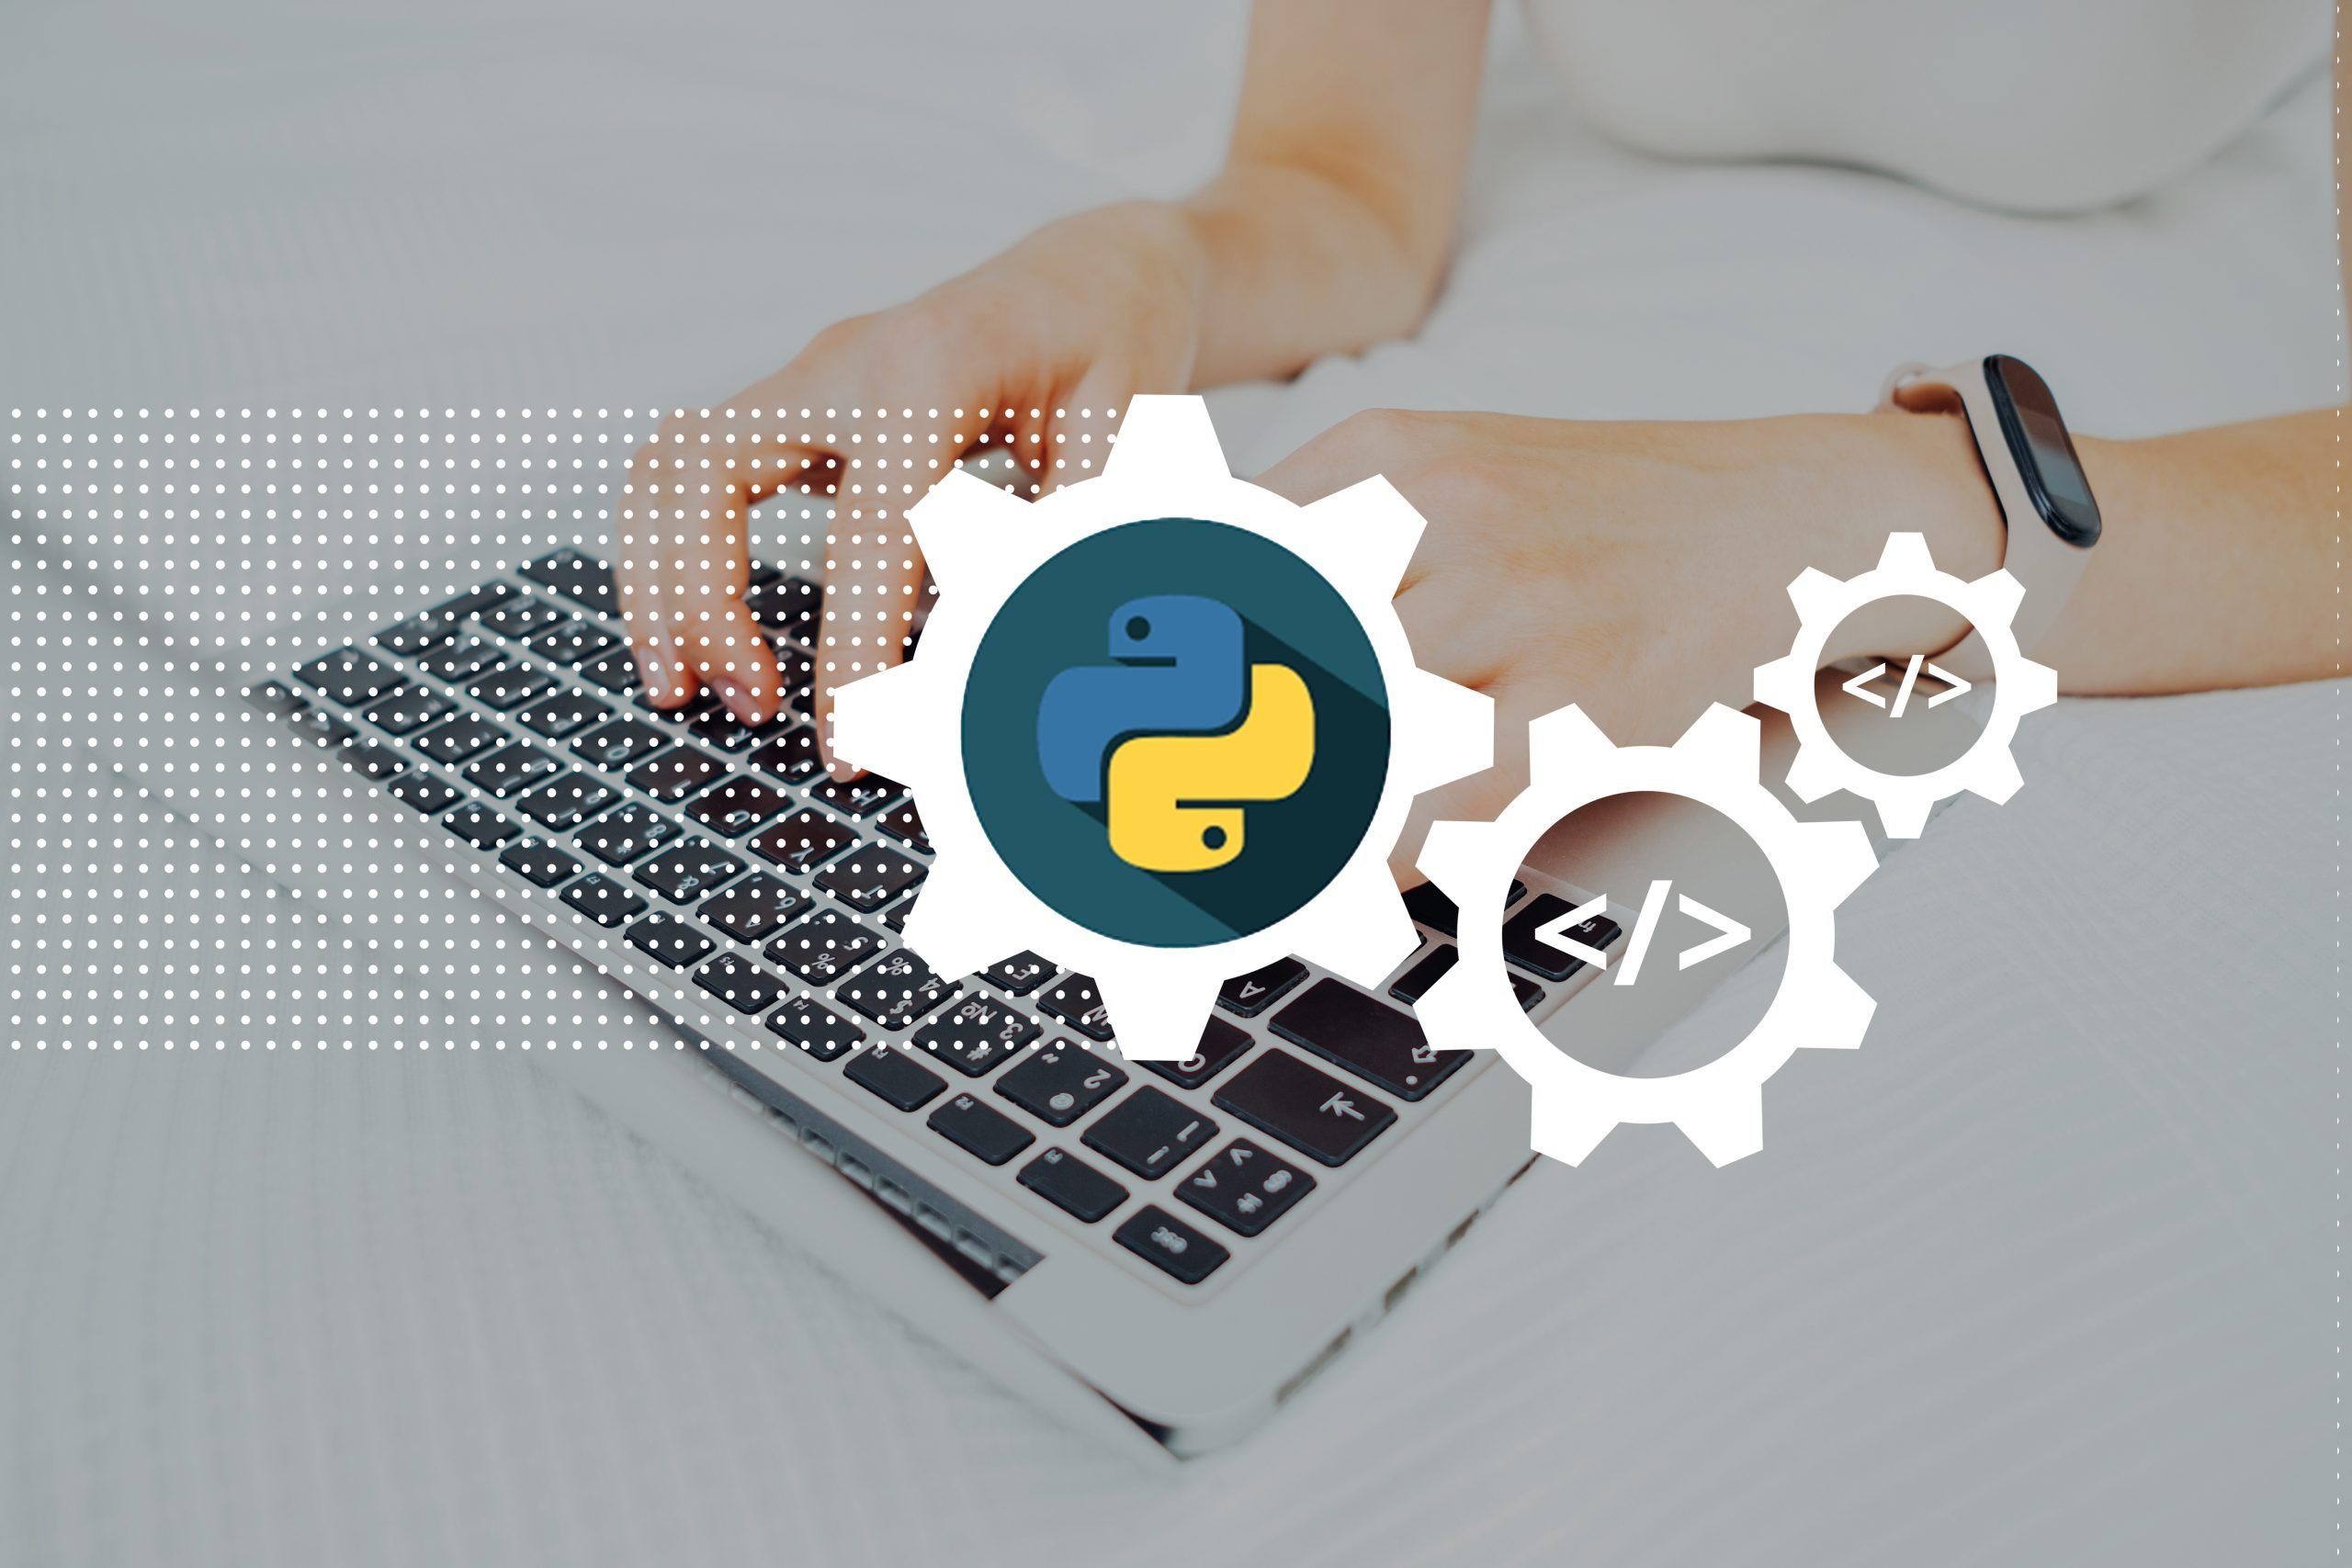 Python programming code language learning concept with person and laptop